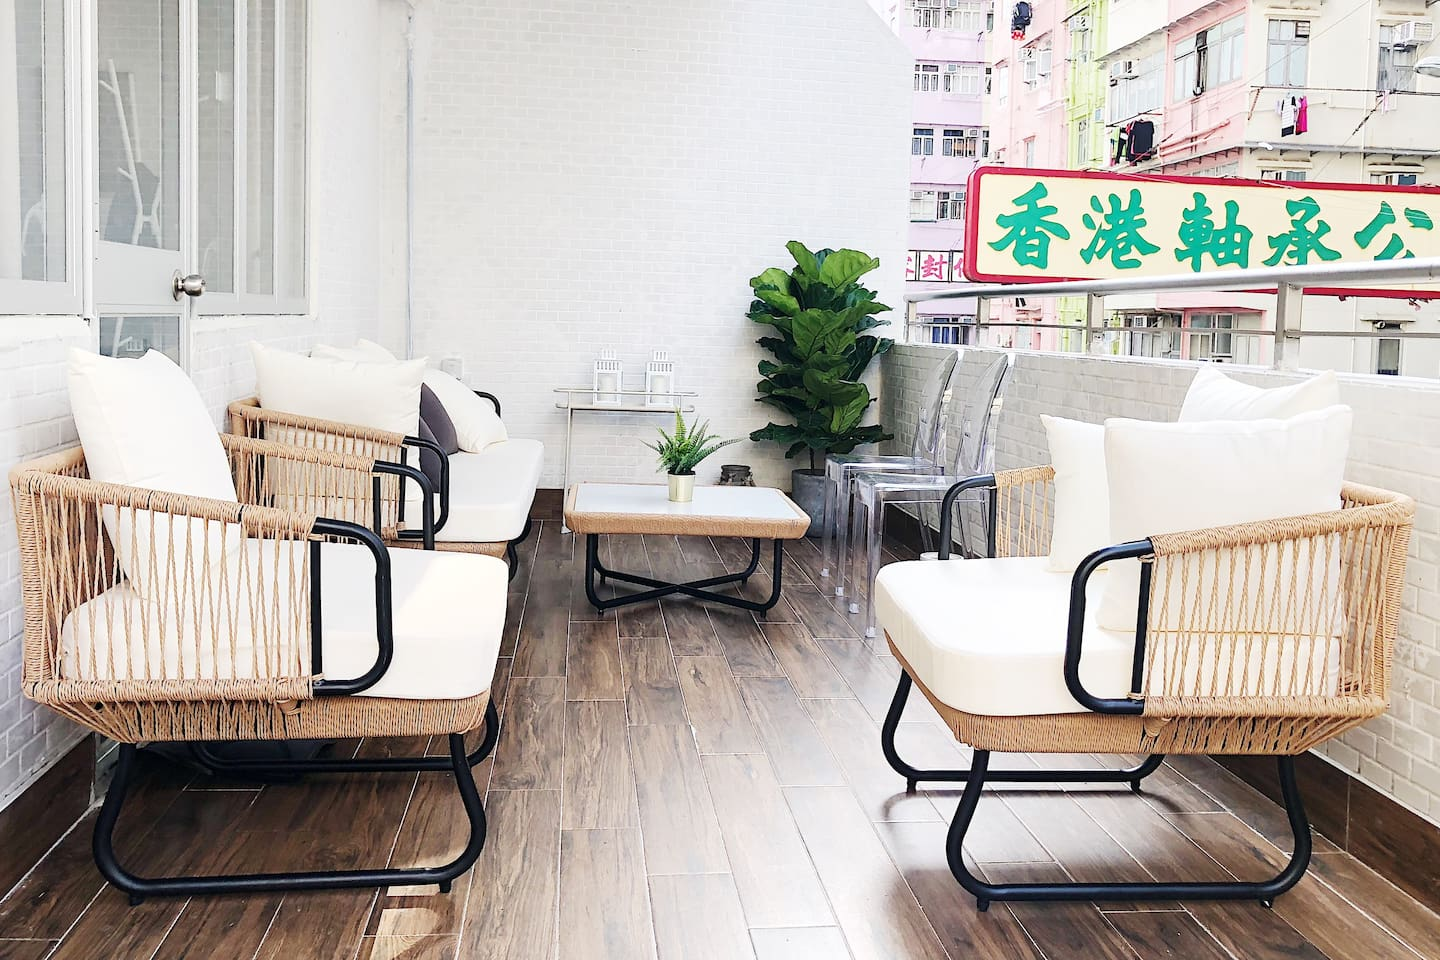 Huge balcony area with outside furniture (rare in HK)